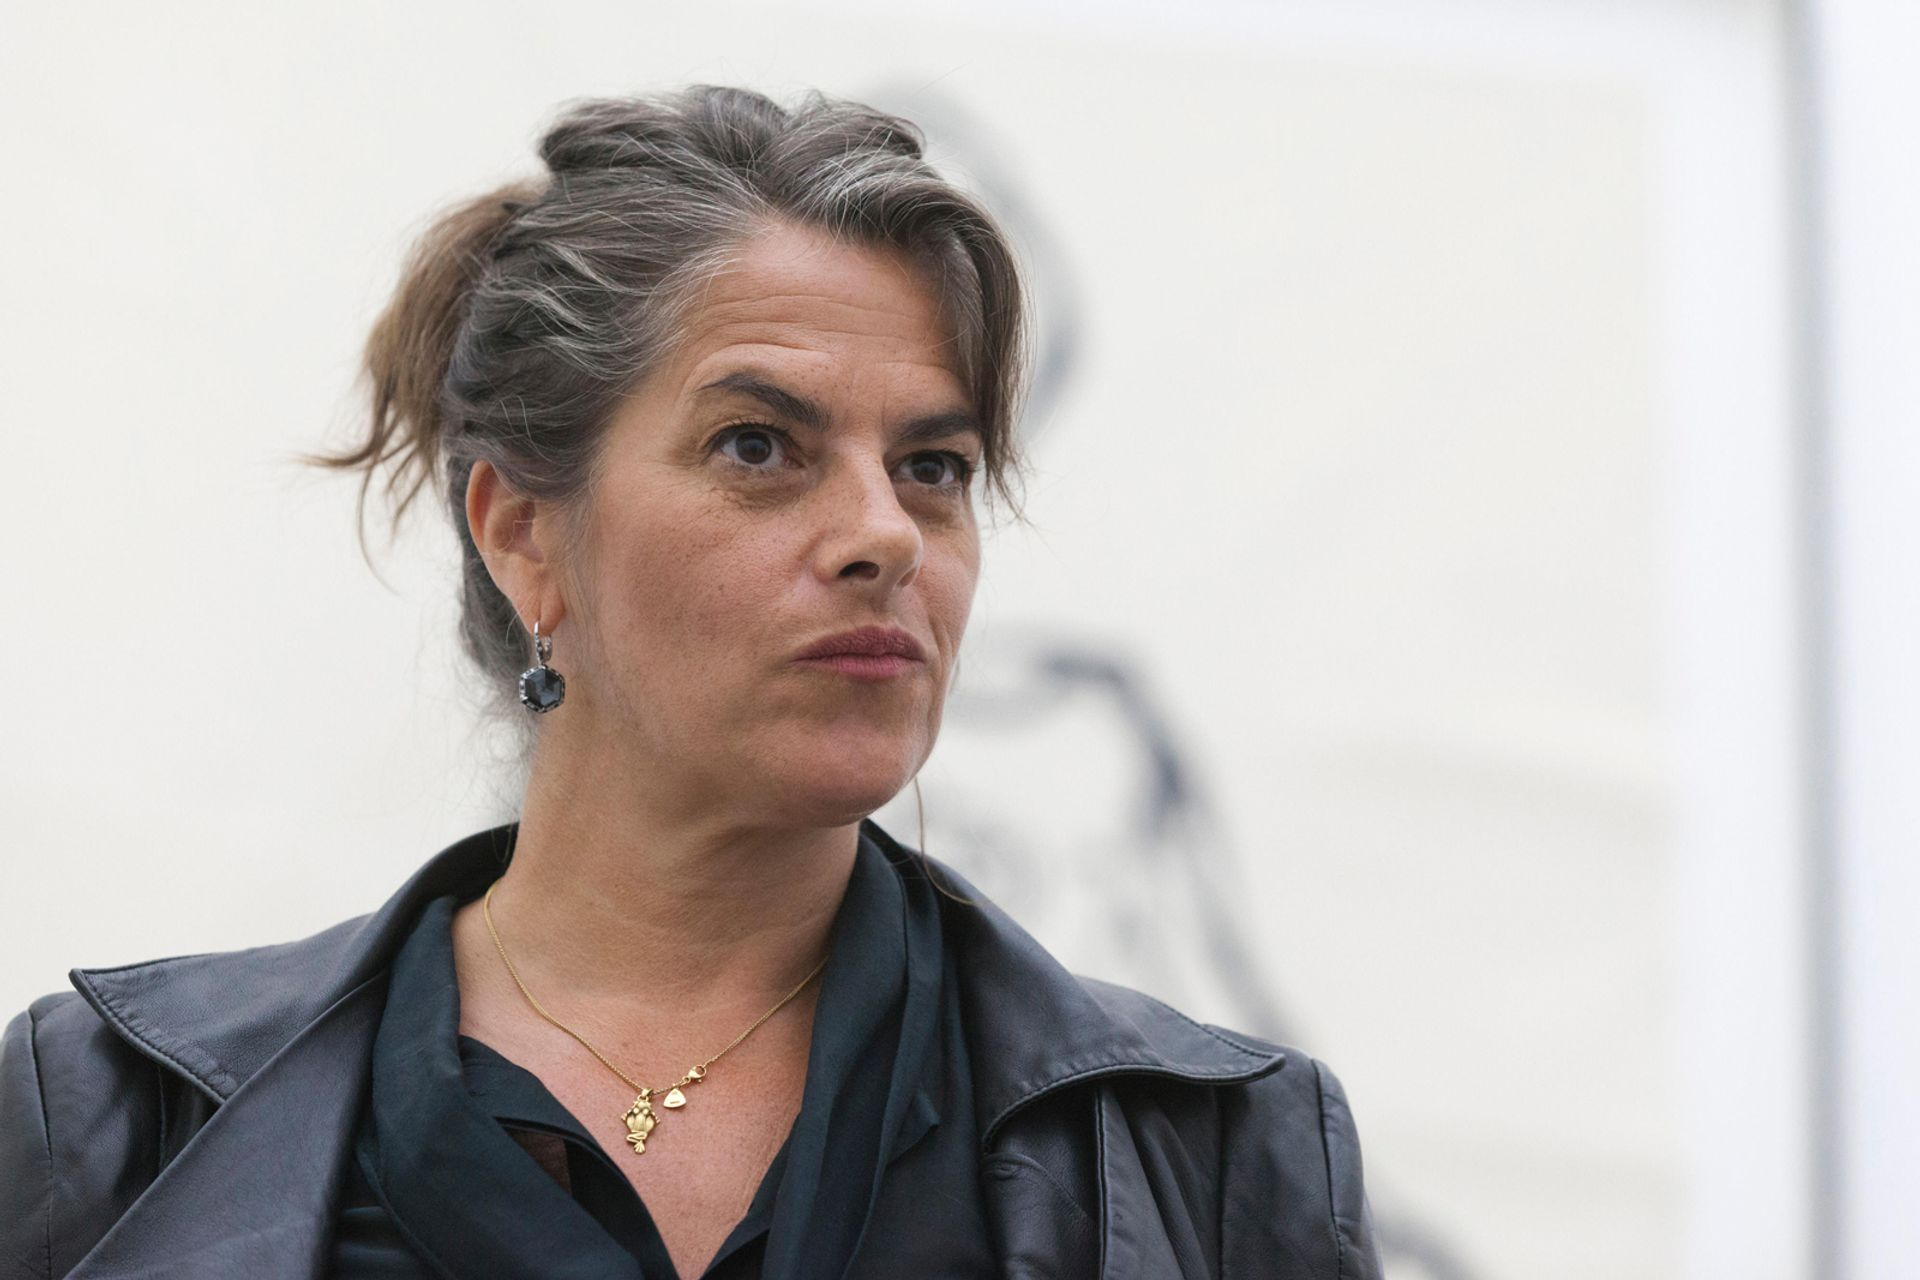 The artist Tracey Emin has been diagnosed with cancer of the bladder © ukartpics / Alamy Stock Photo